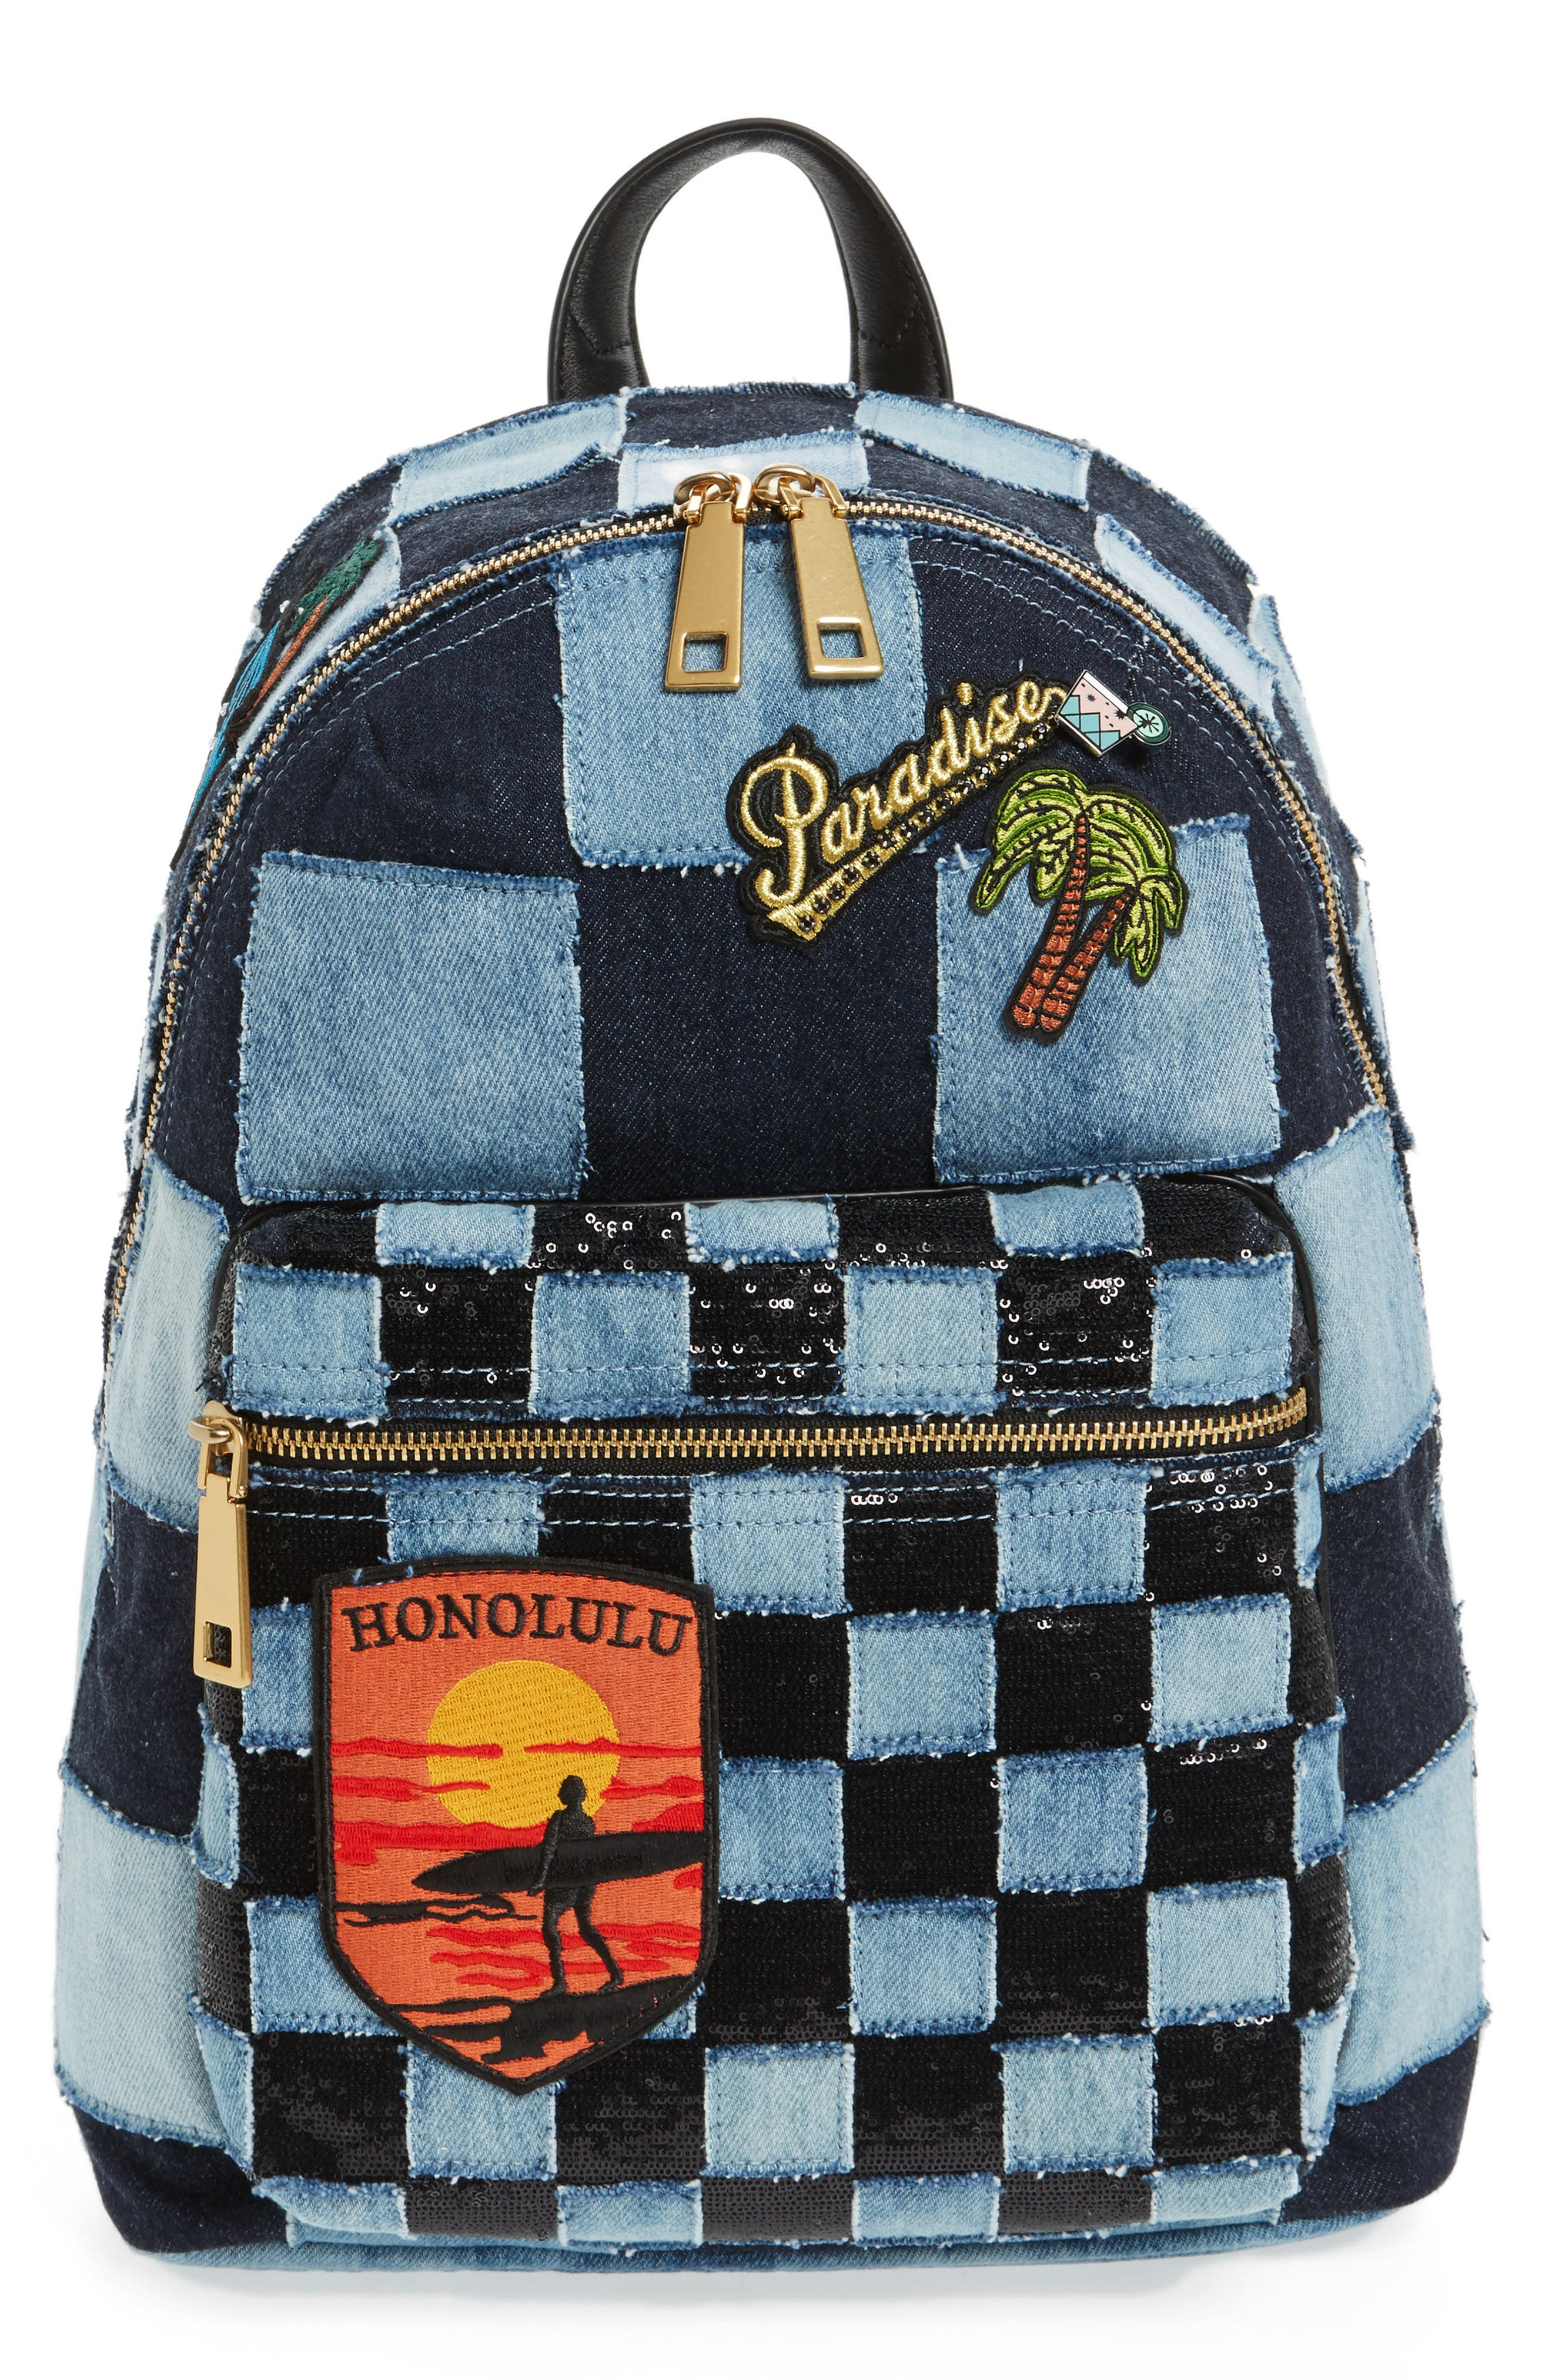 Alternate Image 1 Selected - MARC JACOBS Denim Biker Backpack